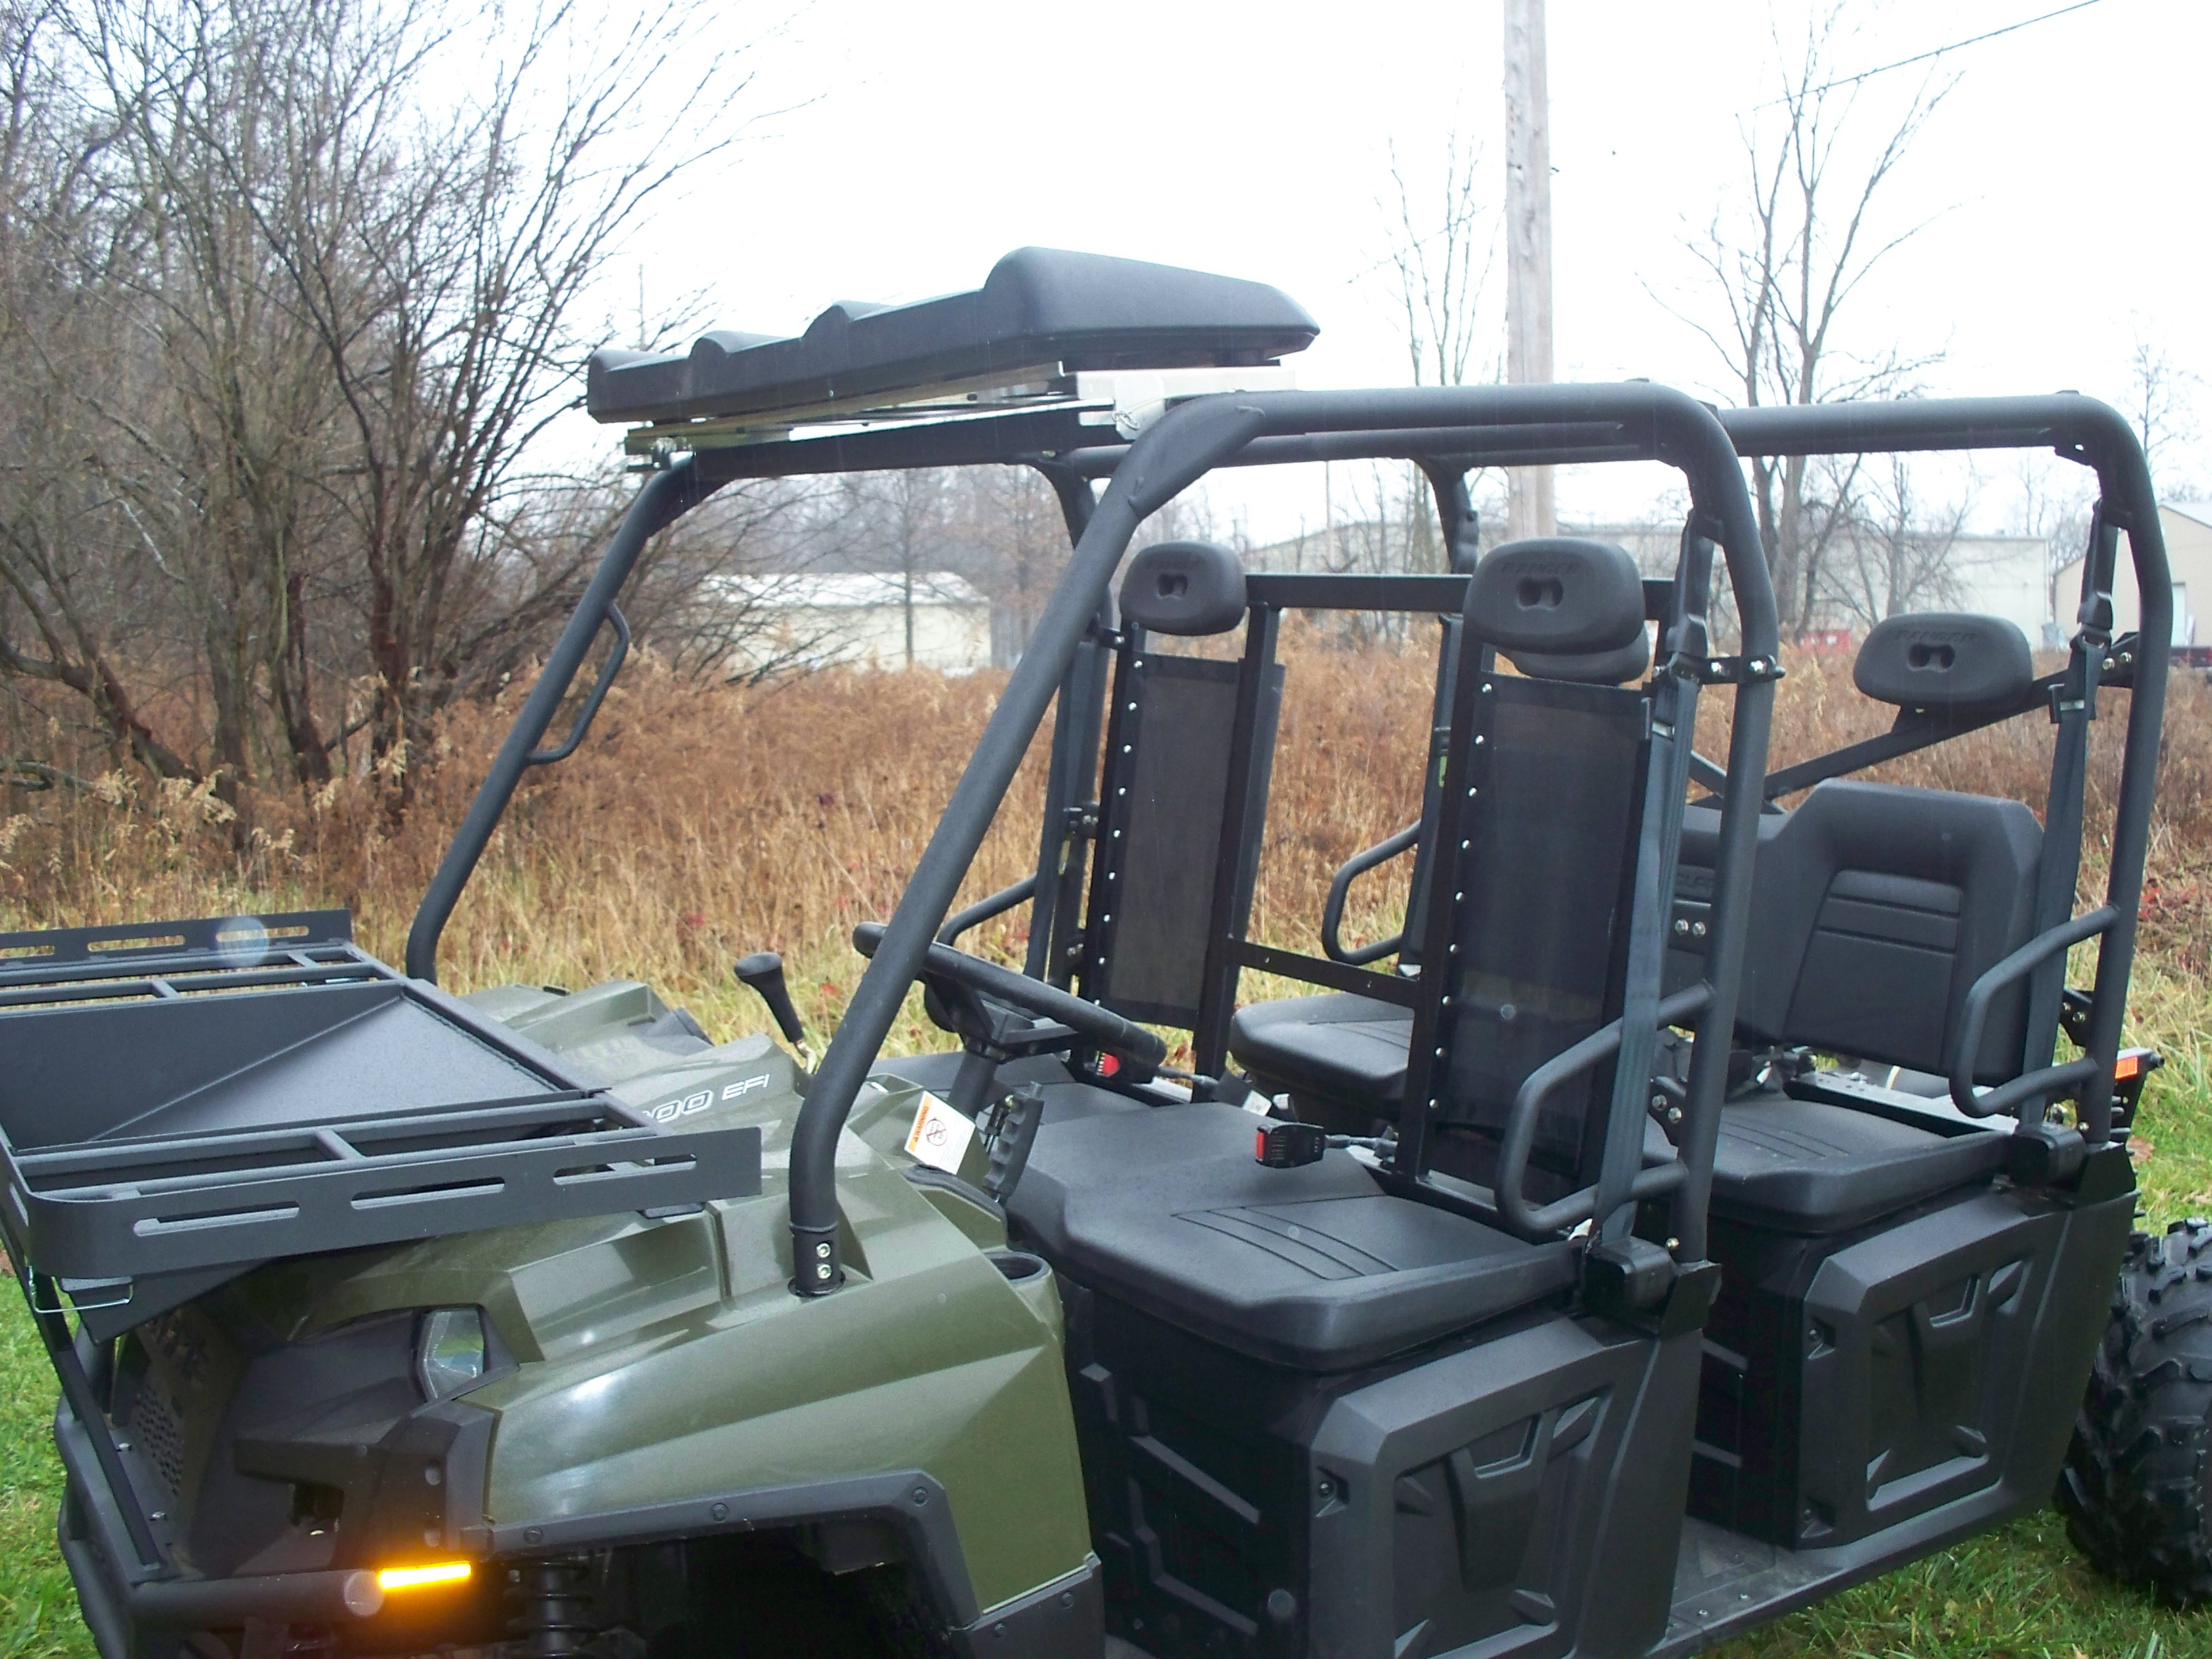 Honda Pioneer Half Scratch Resistant Windshield In Right Side X moreover X I V additionally D Metal Valve Cover Swap Questions Img together with D Polaris Ranger Trailer Img as well D Ranger Flat Bed Pics Post Them Polaris Ranger X Exteded Flat Deck. on polaris ranger crew